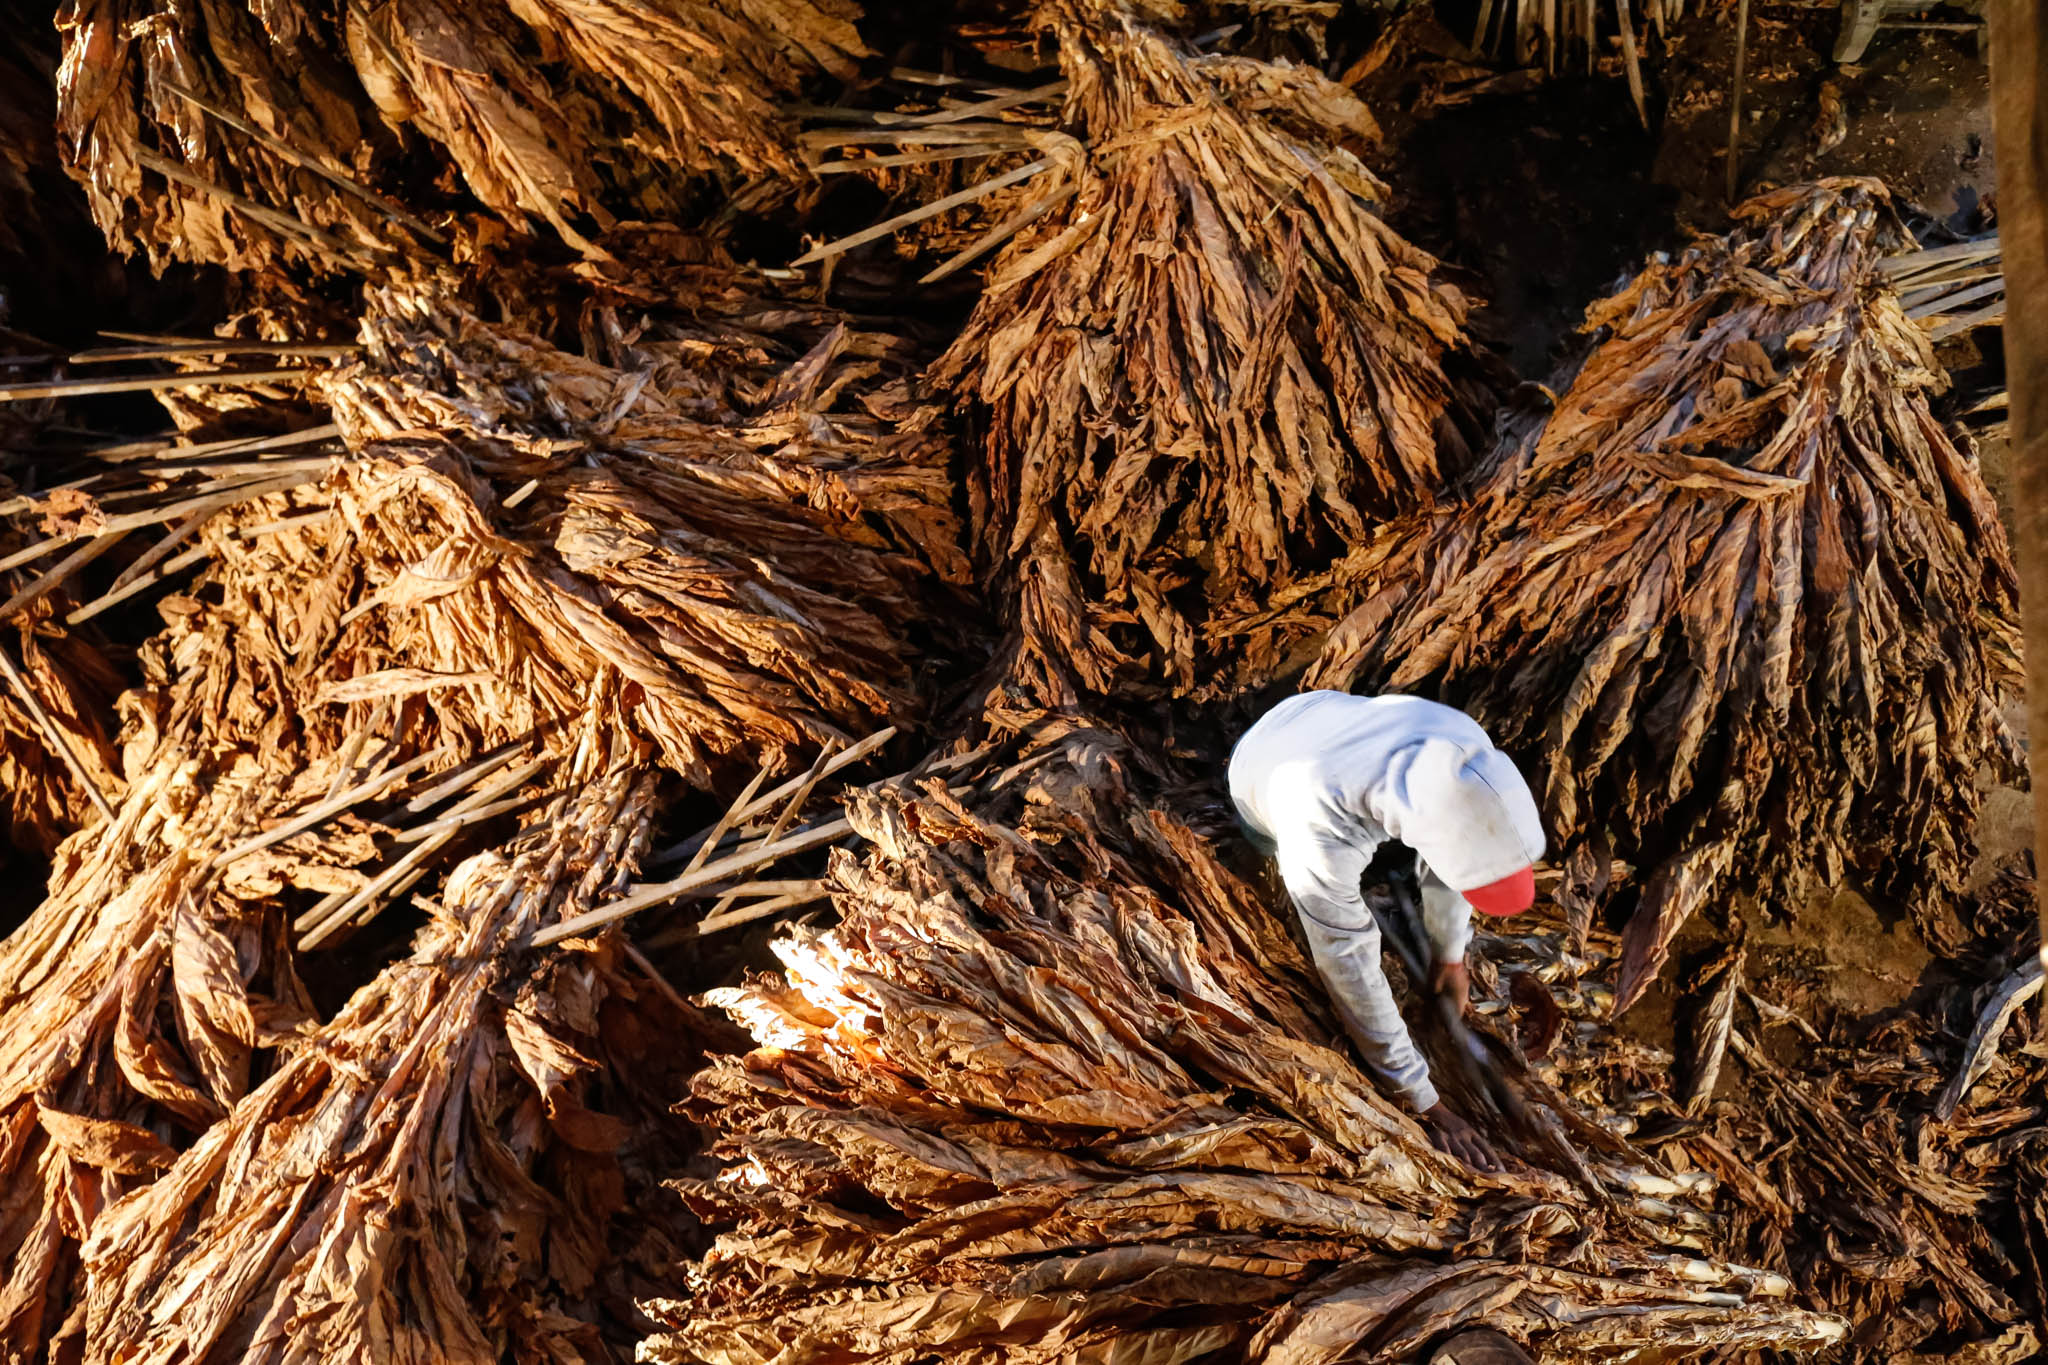 Tobacco stalks are separated for processing at the Mucci Farm in Midway, Kentucky.